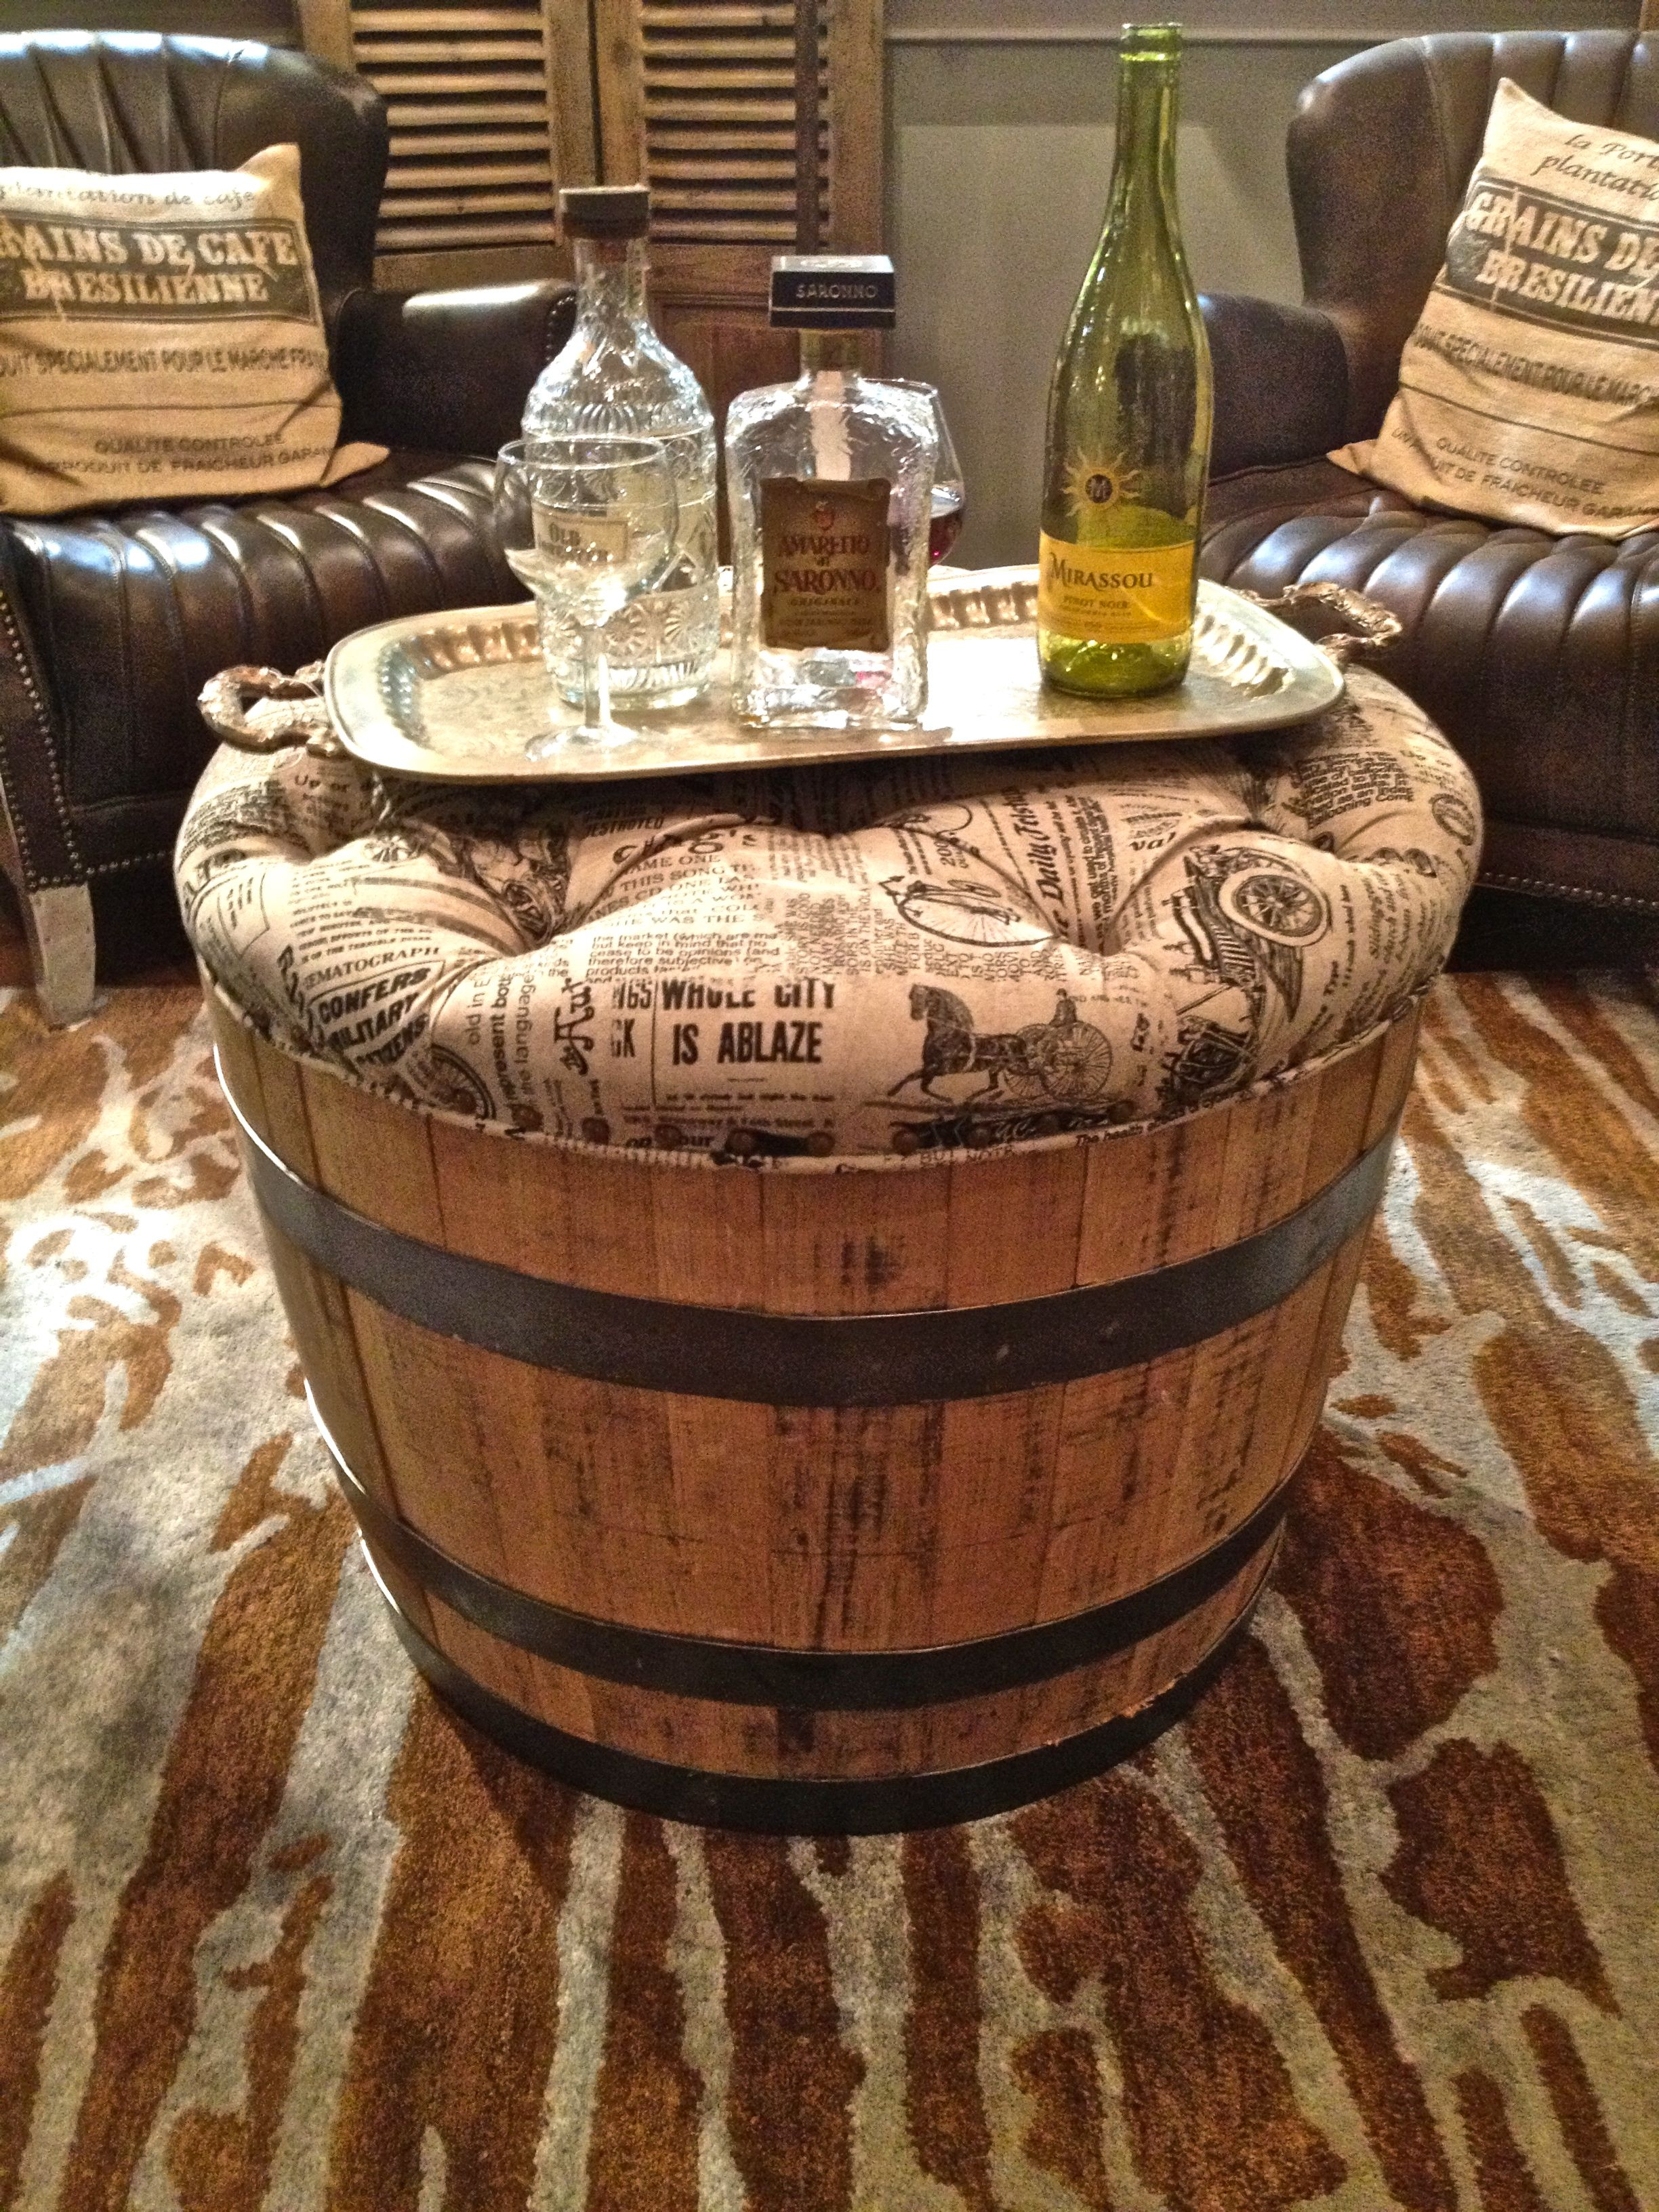 20 clever diy ideas to repurpose old wine barrels vintage wine 20 clever diy ideas to repurpose old wine barrels wine barrel tablewine barrel furniturewhiskey barrel coffee geotapseo Choice Image